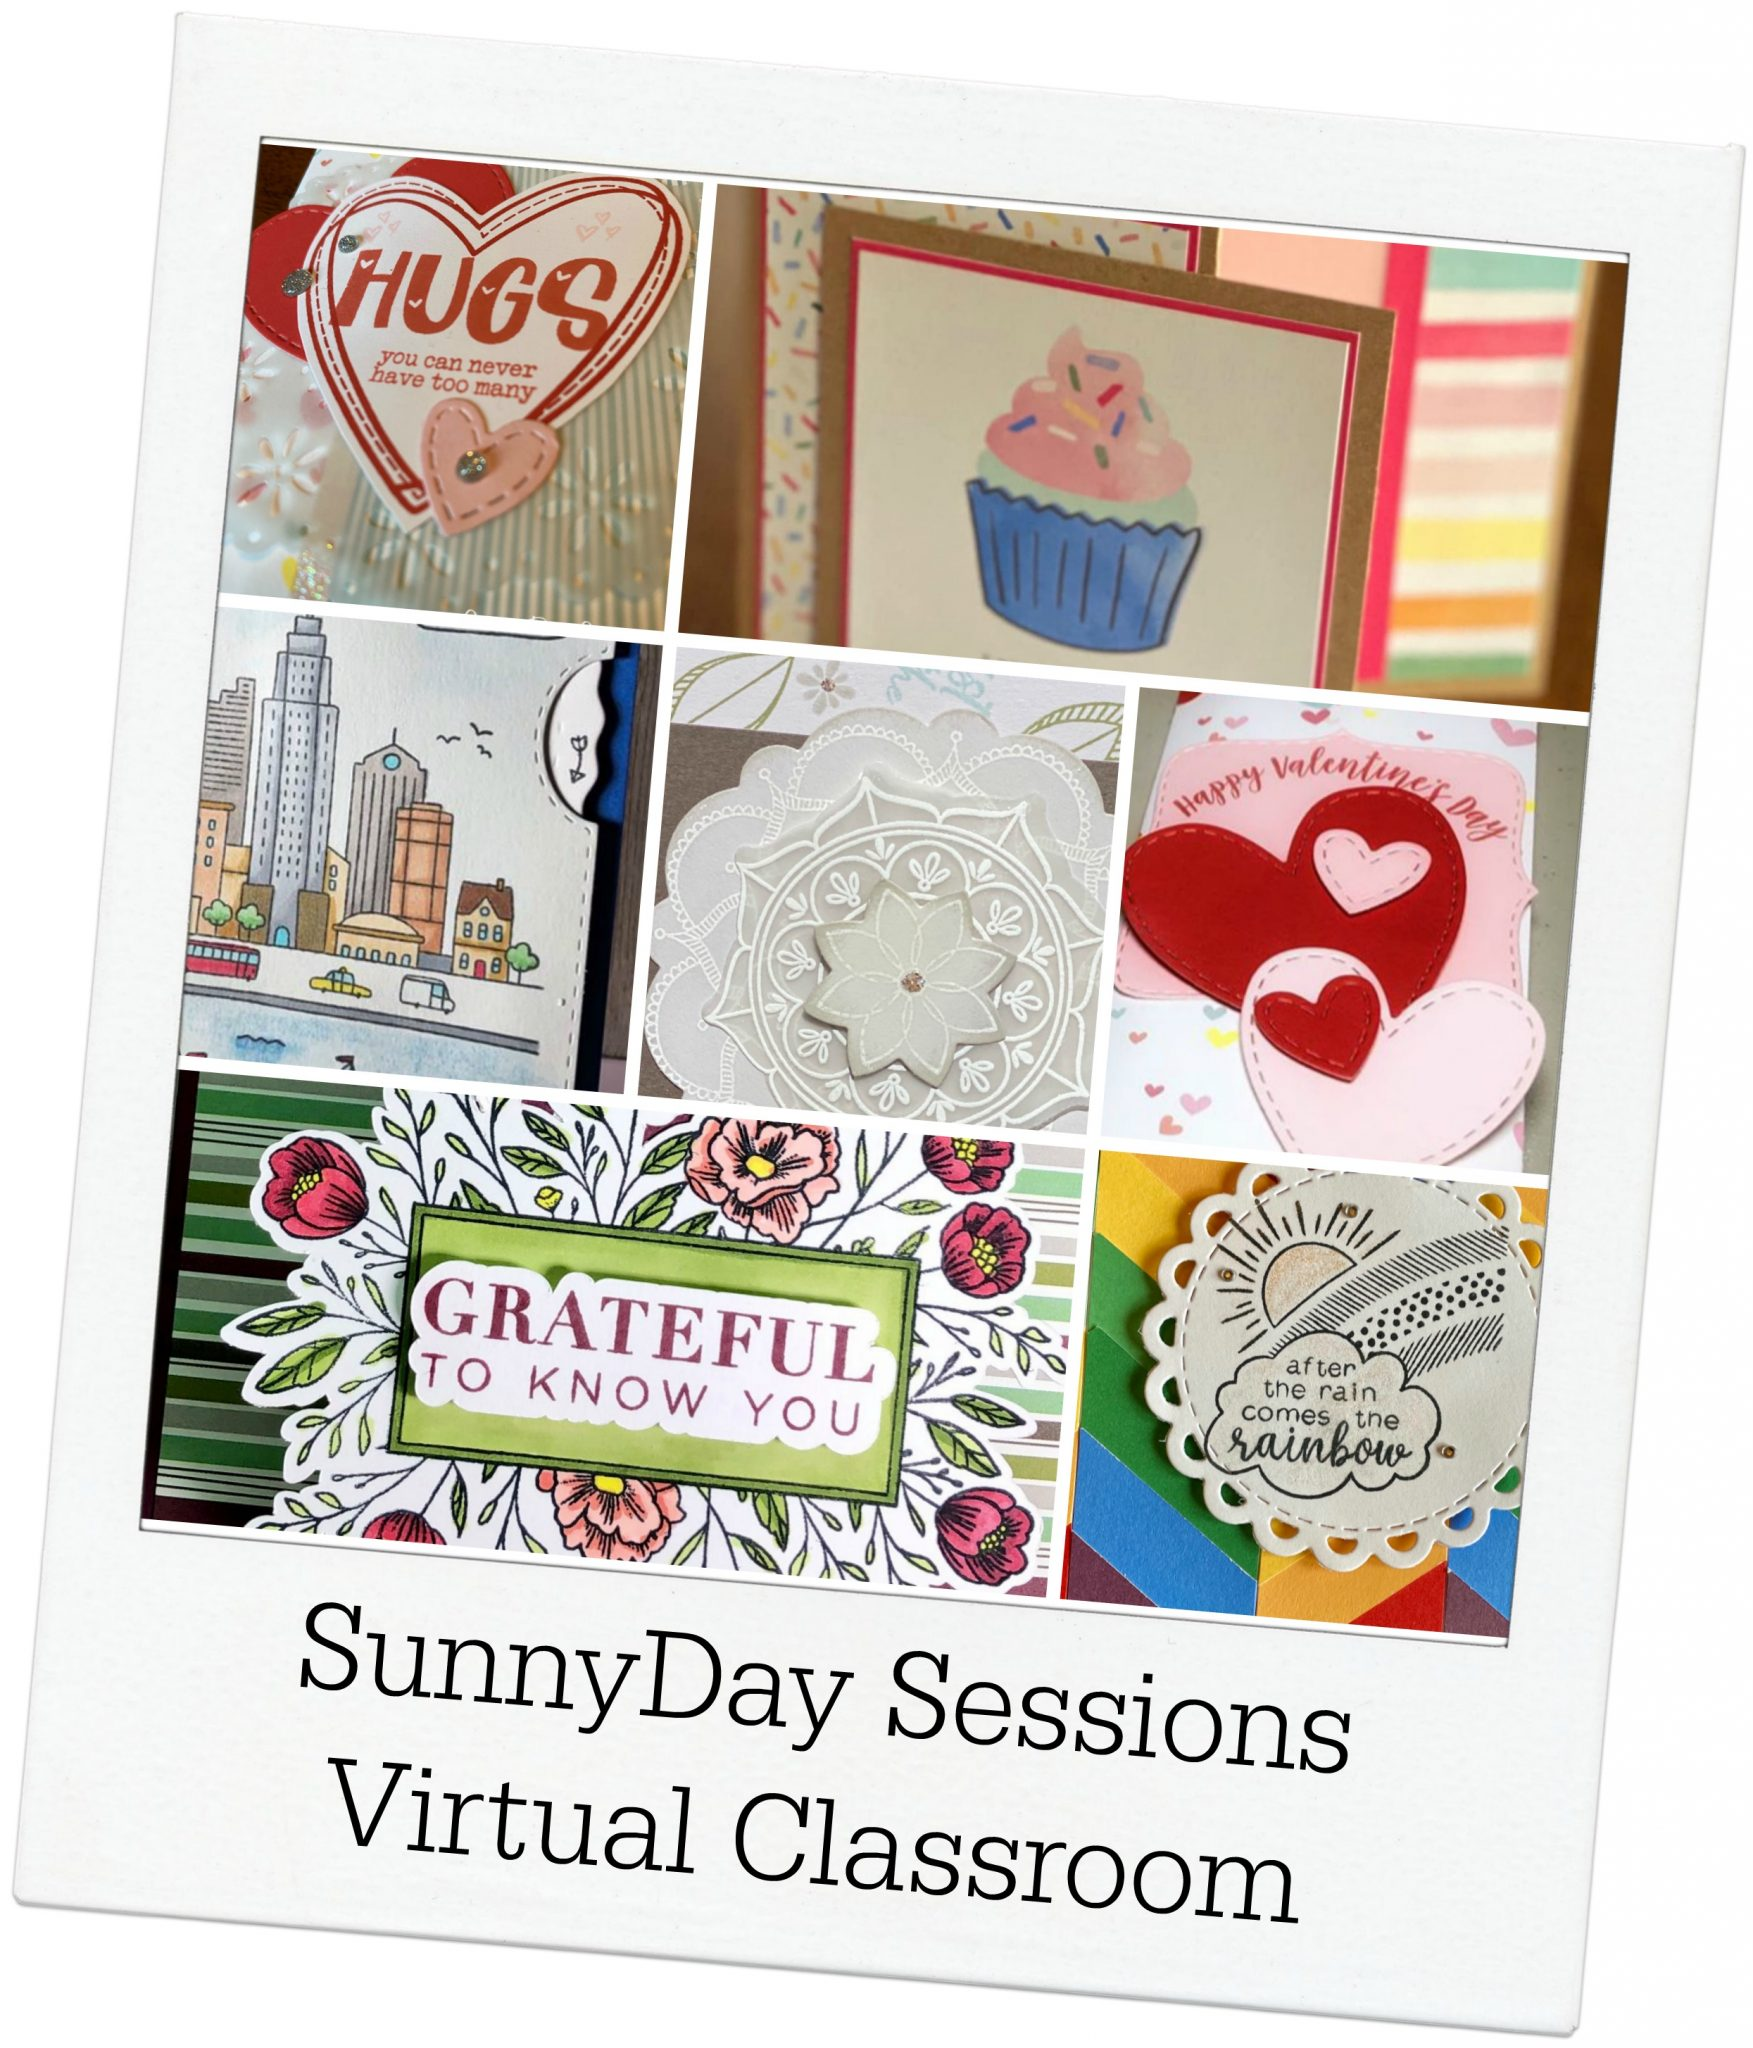 SunnyDay Sessions Project Samples